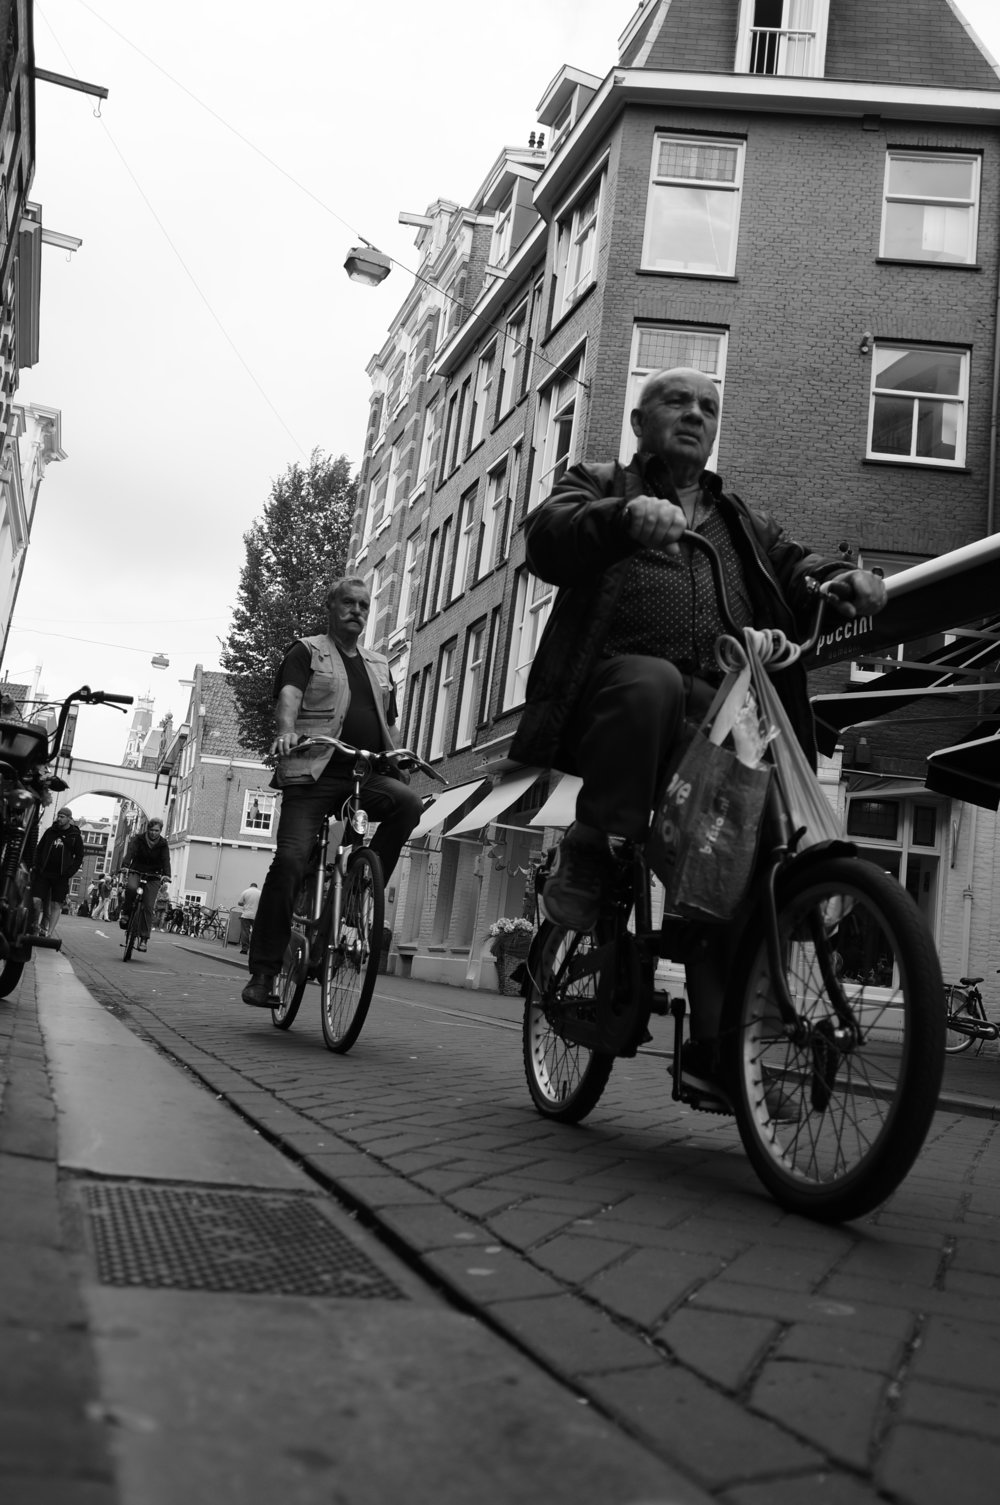 Of course, a photo shoot in Amsterdam won't be complete without the notorious bicycle shots.